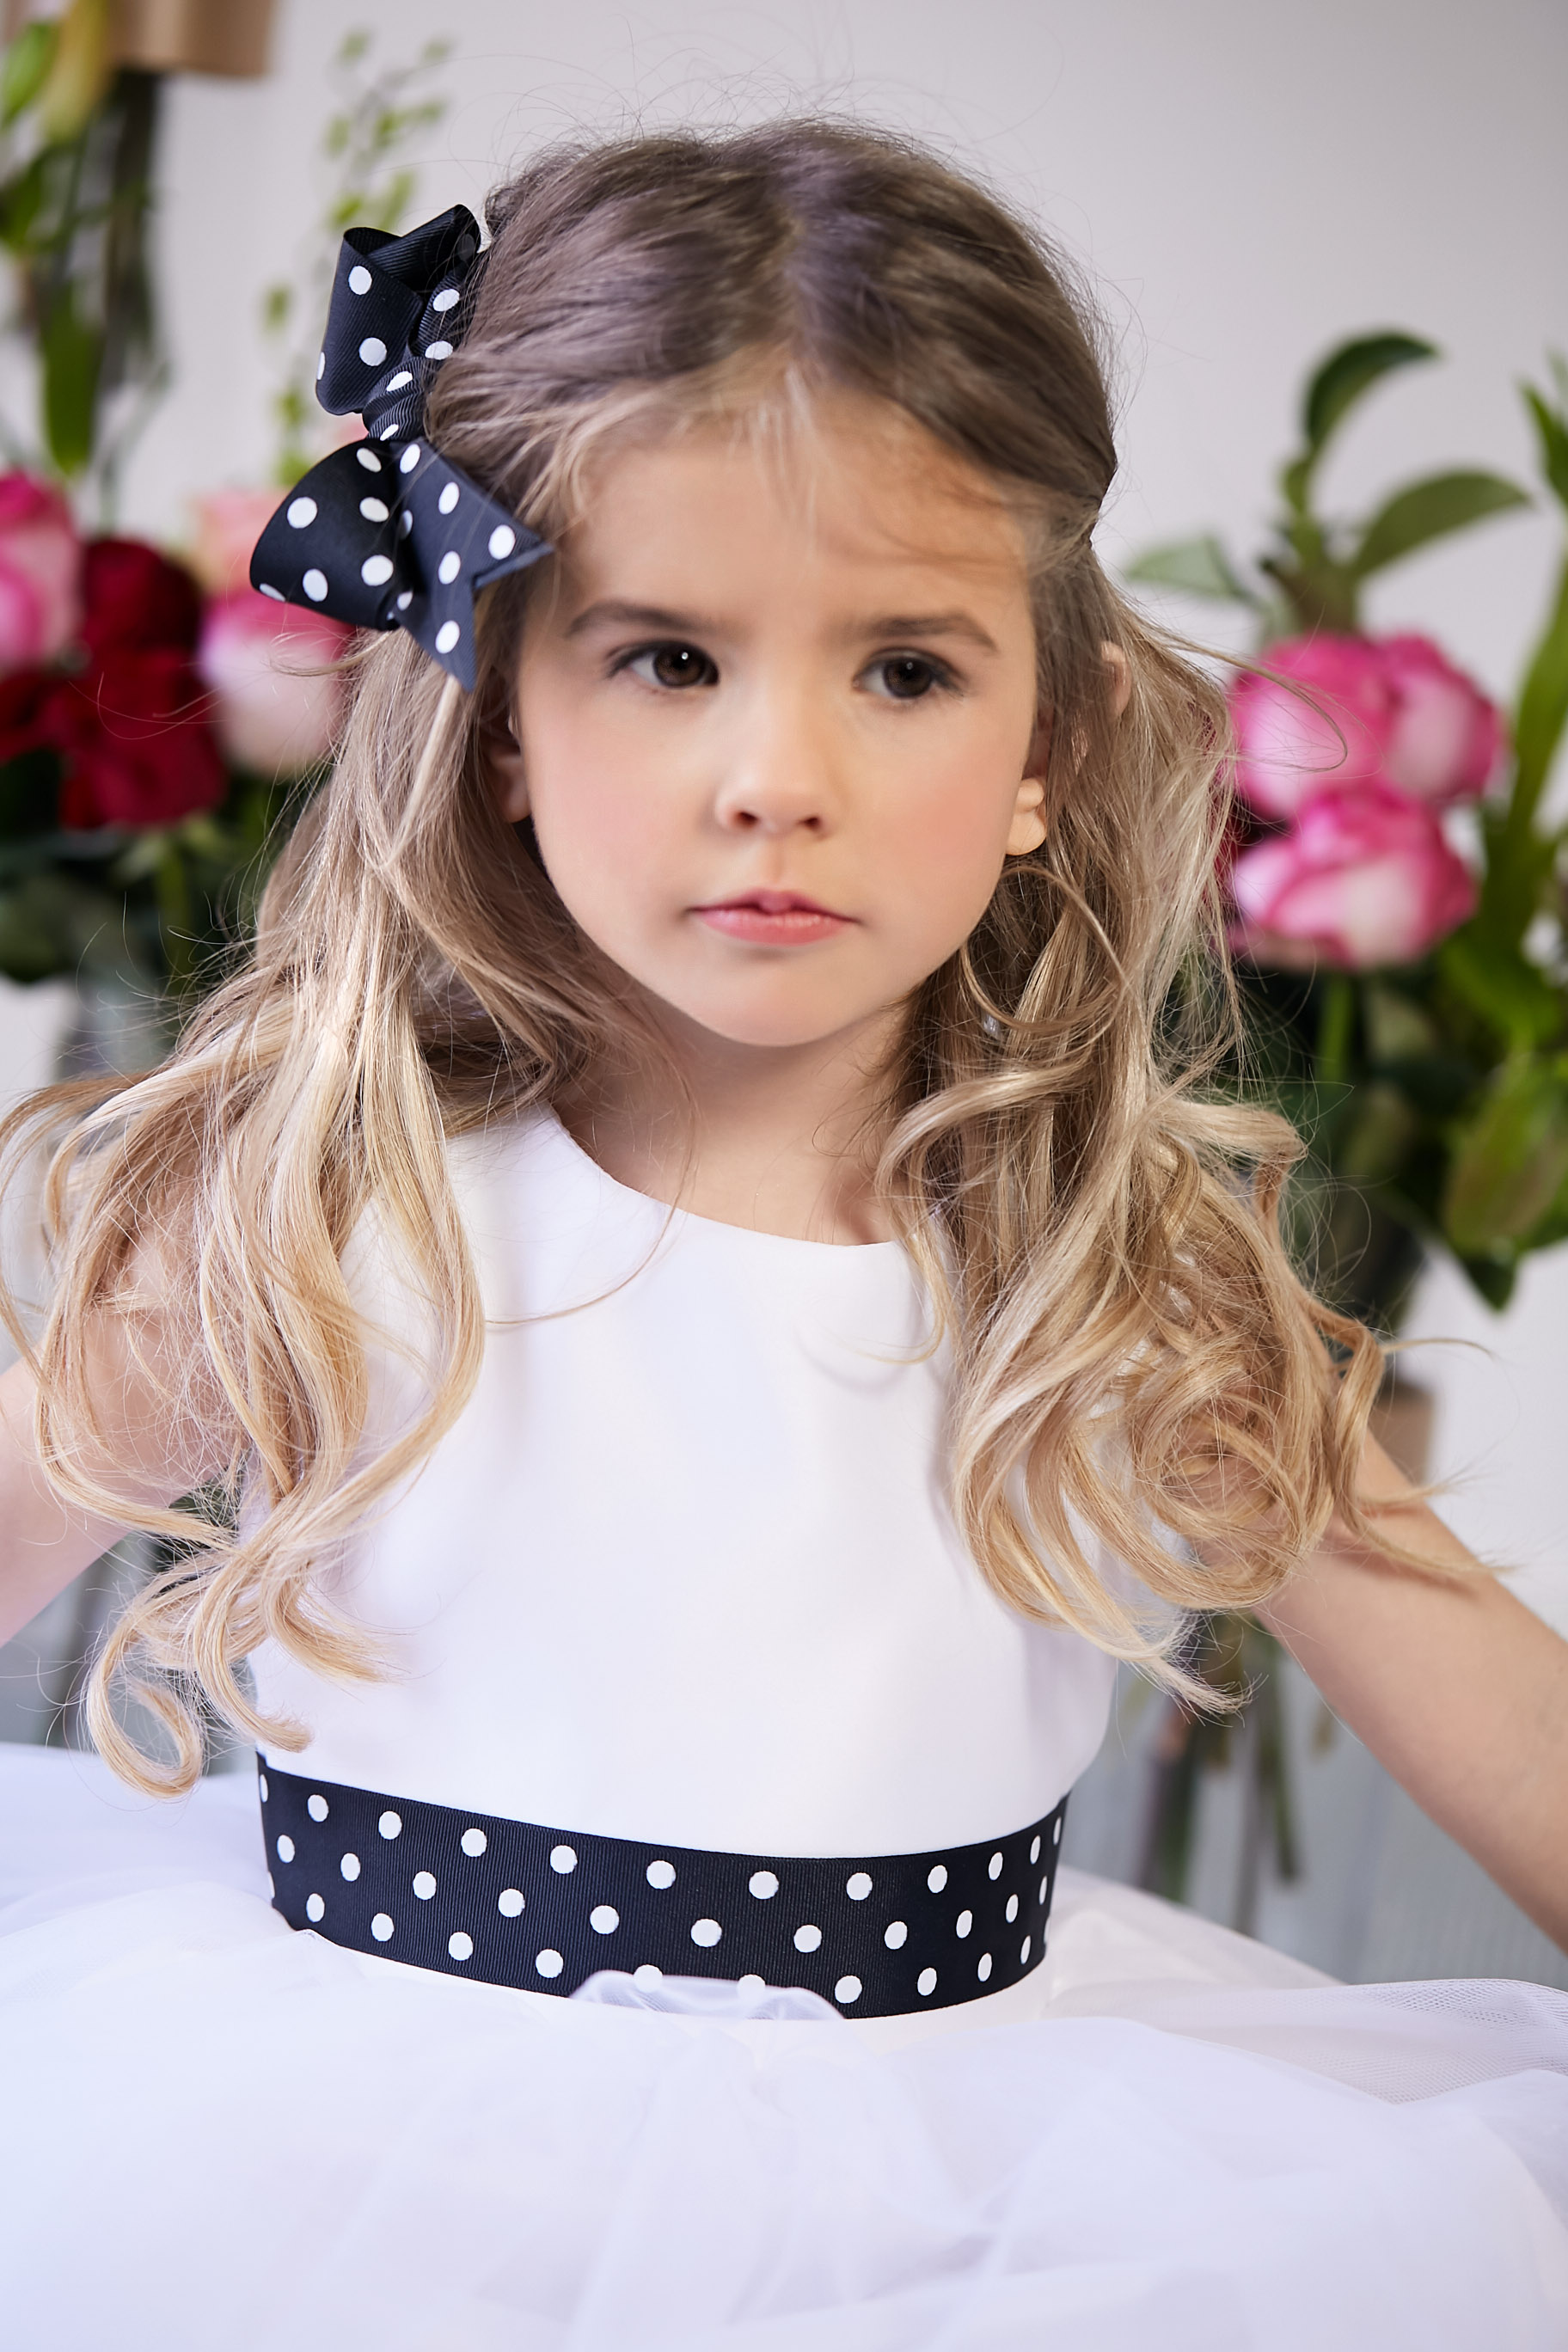 Betsy-Lou Flower Girl Dress